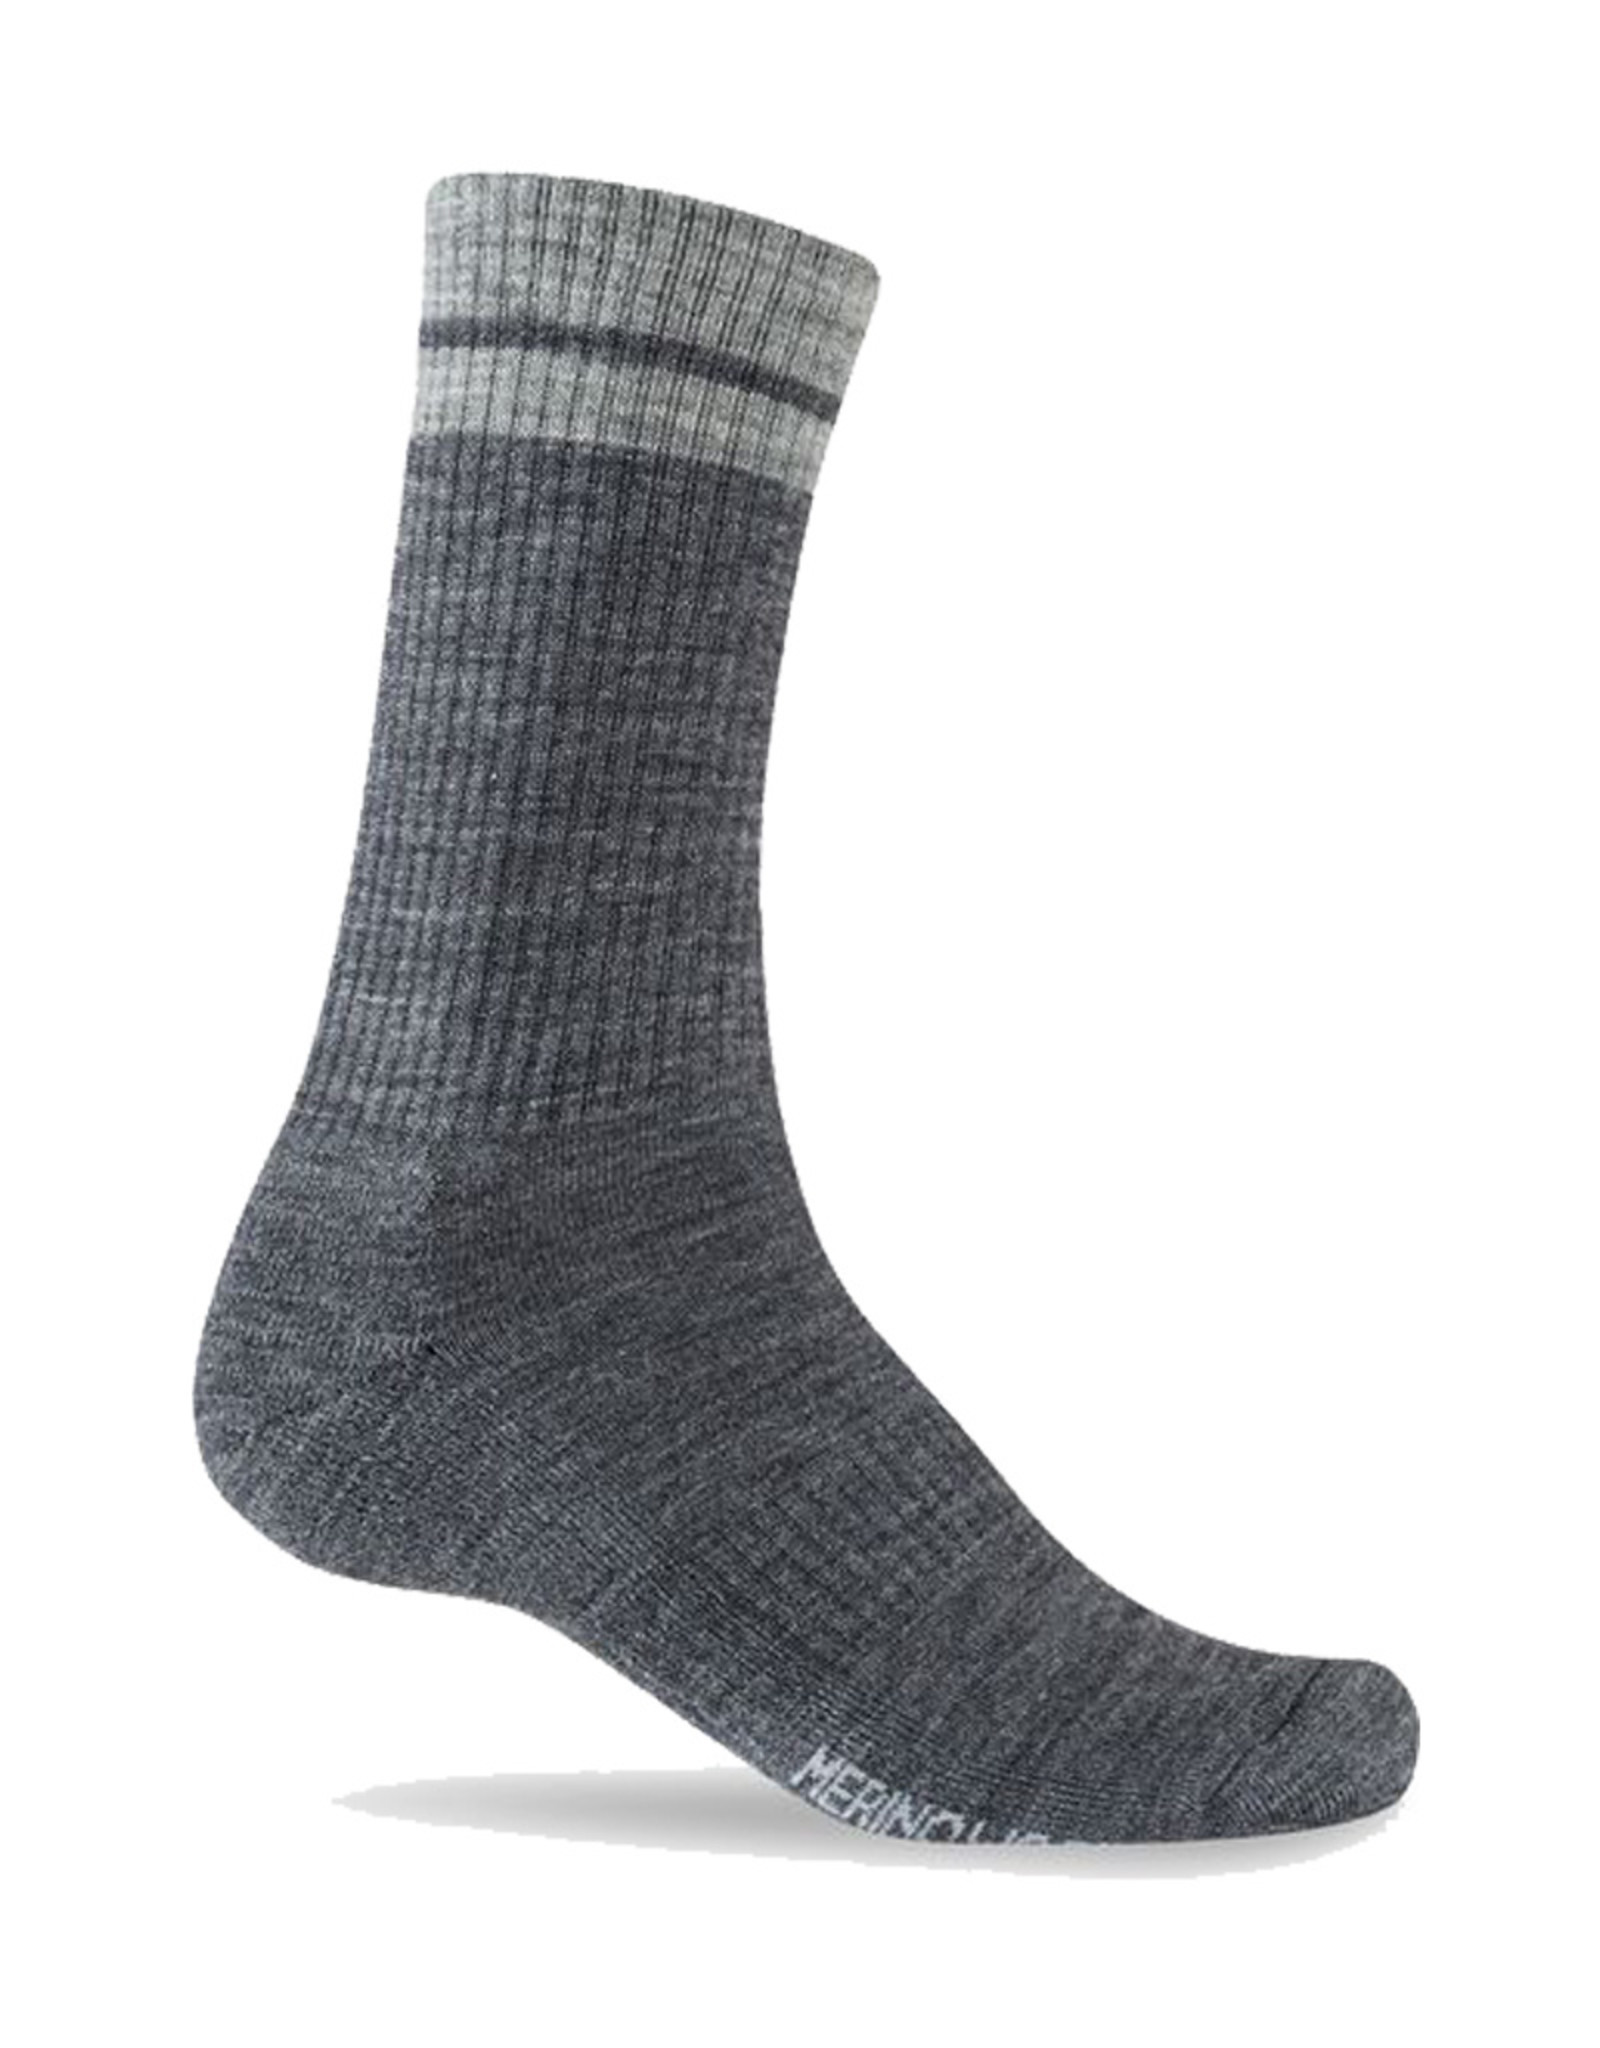 Giro Bas Giro Merino Winter Sock